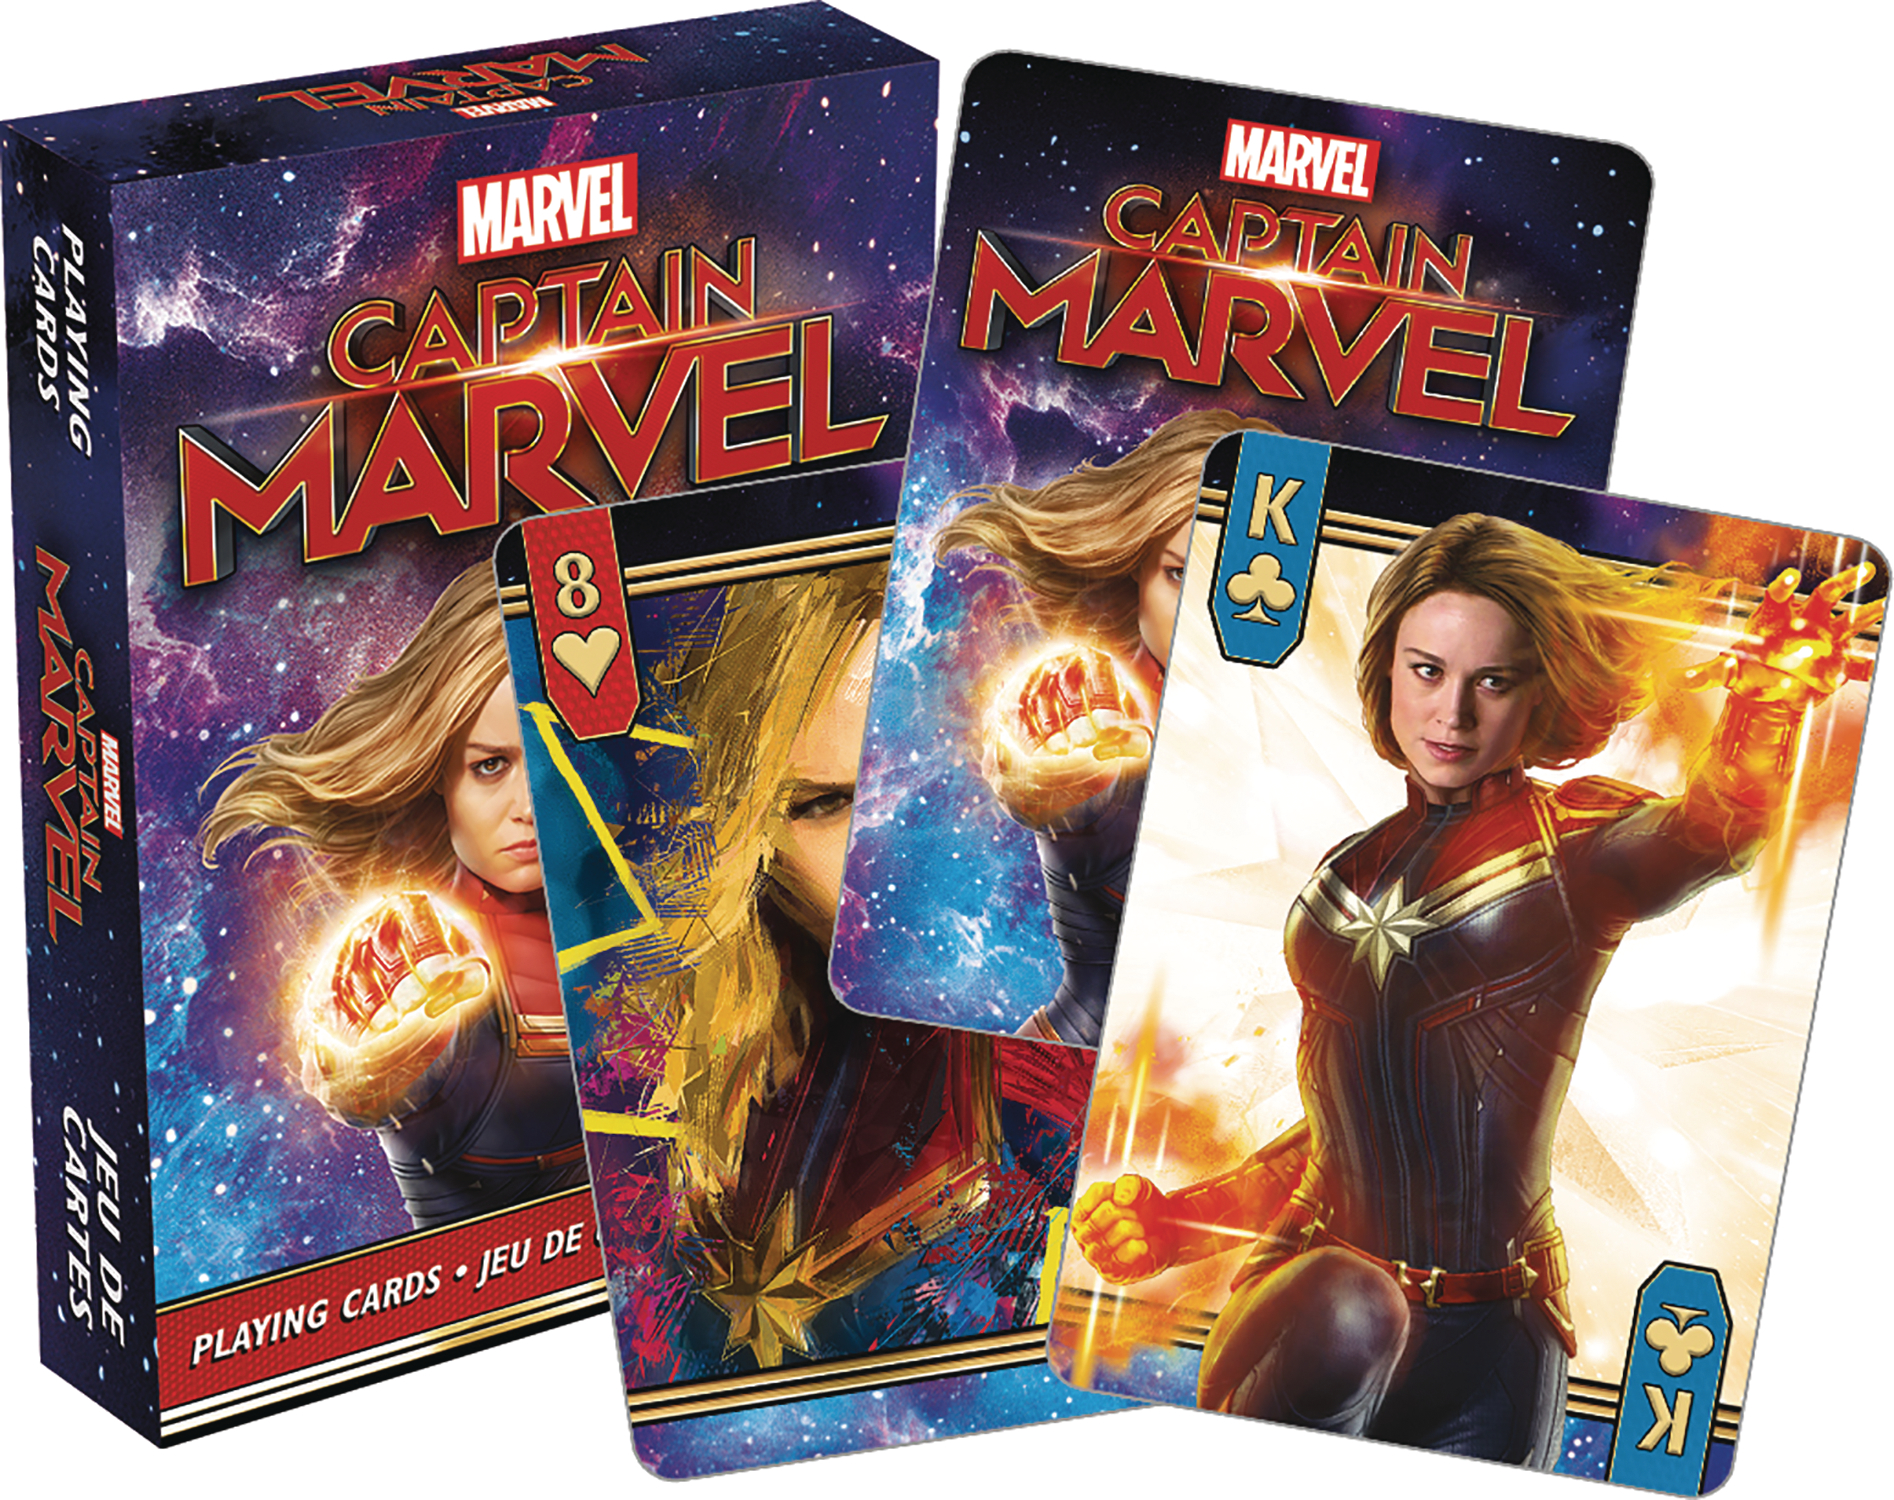 MARVEL CAPTAIN MARVEL MOVIE PLAYING CARDS